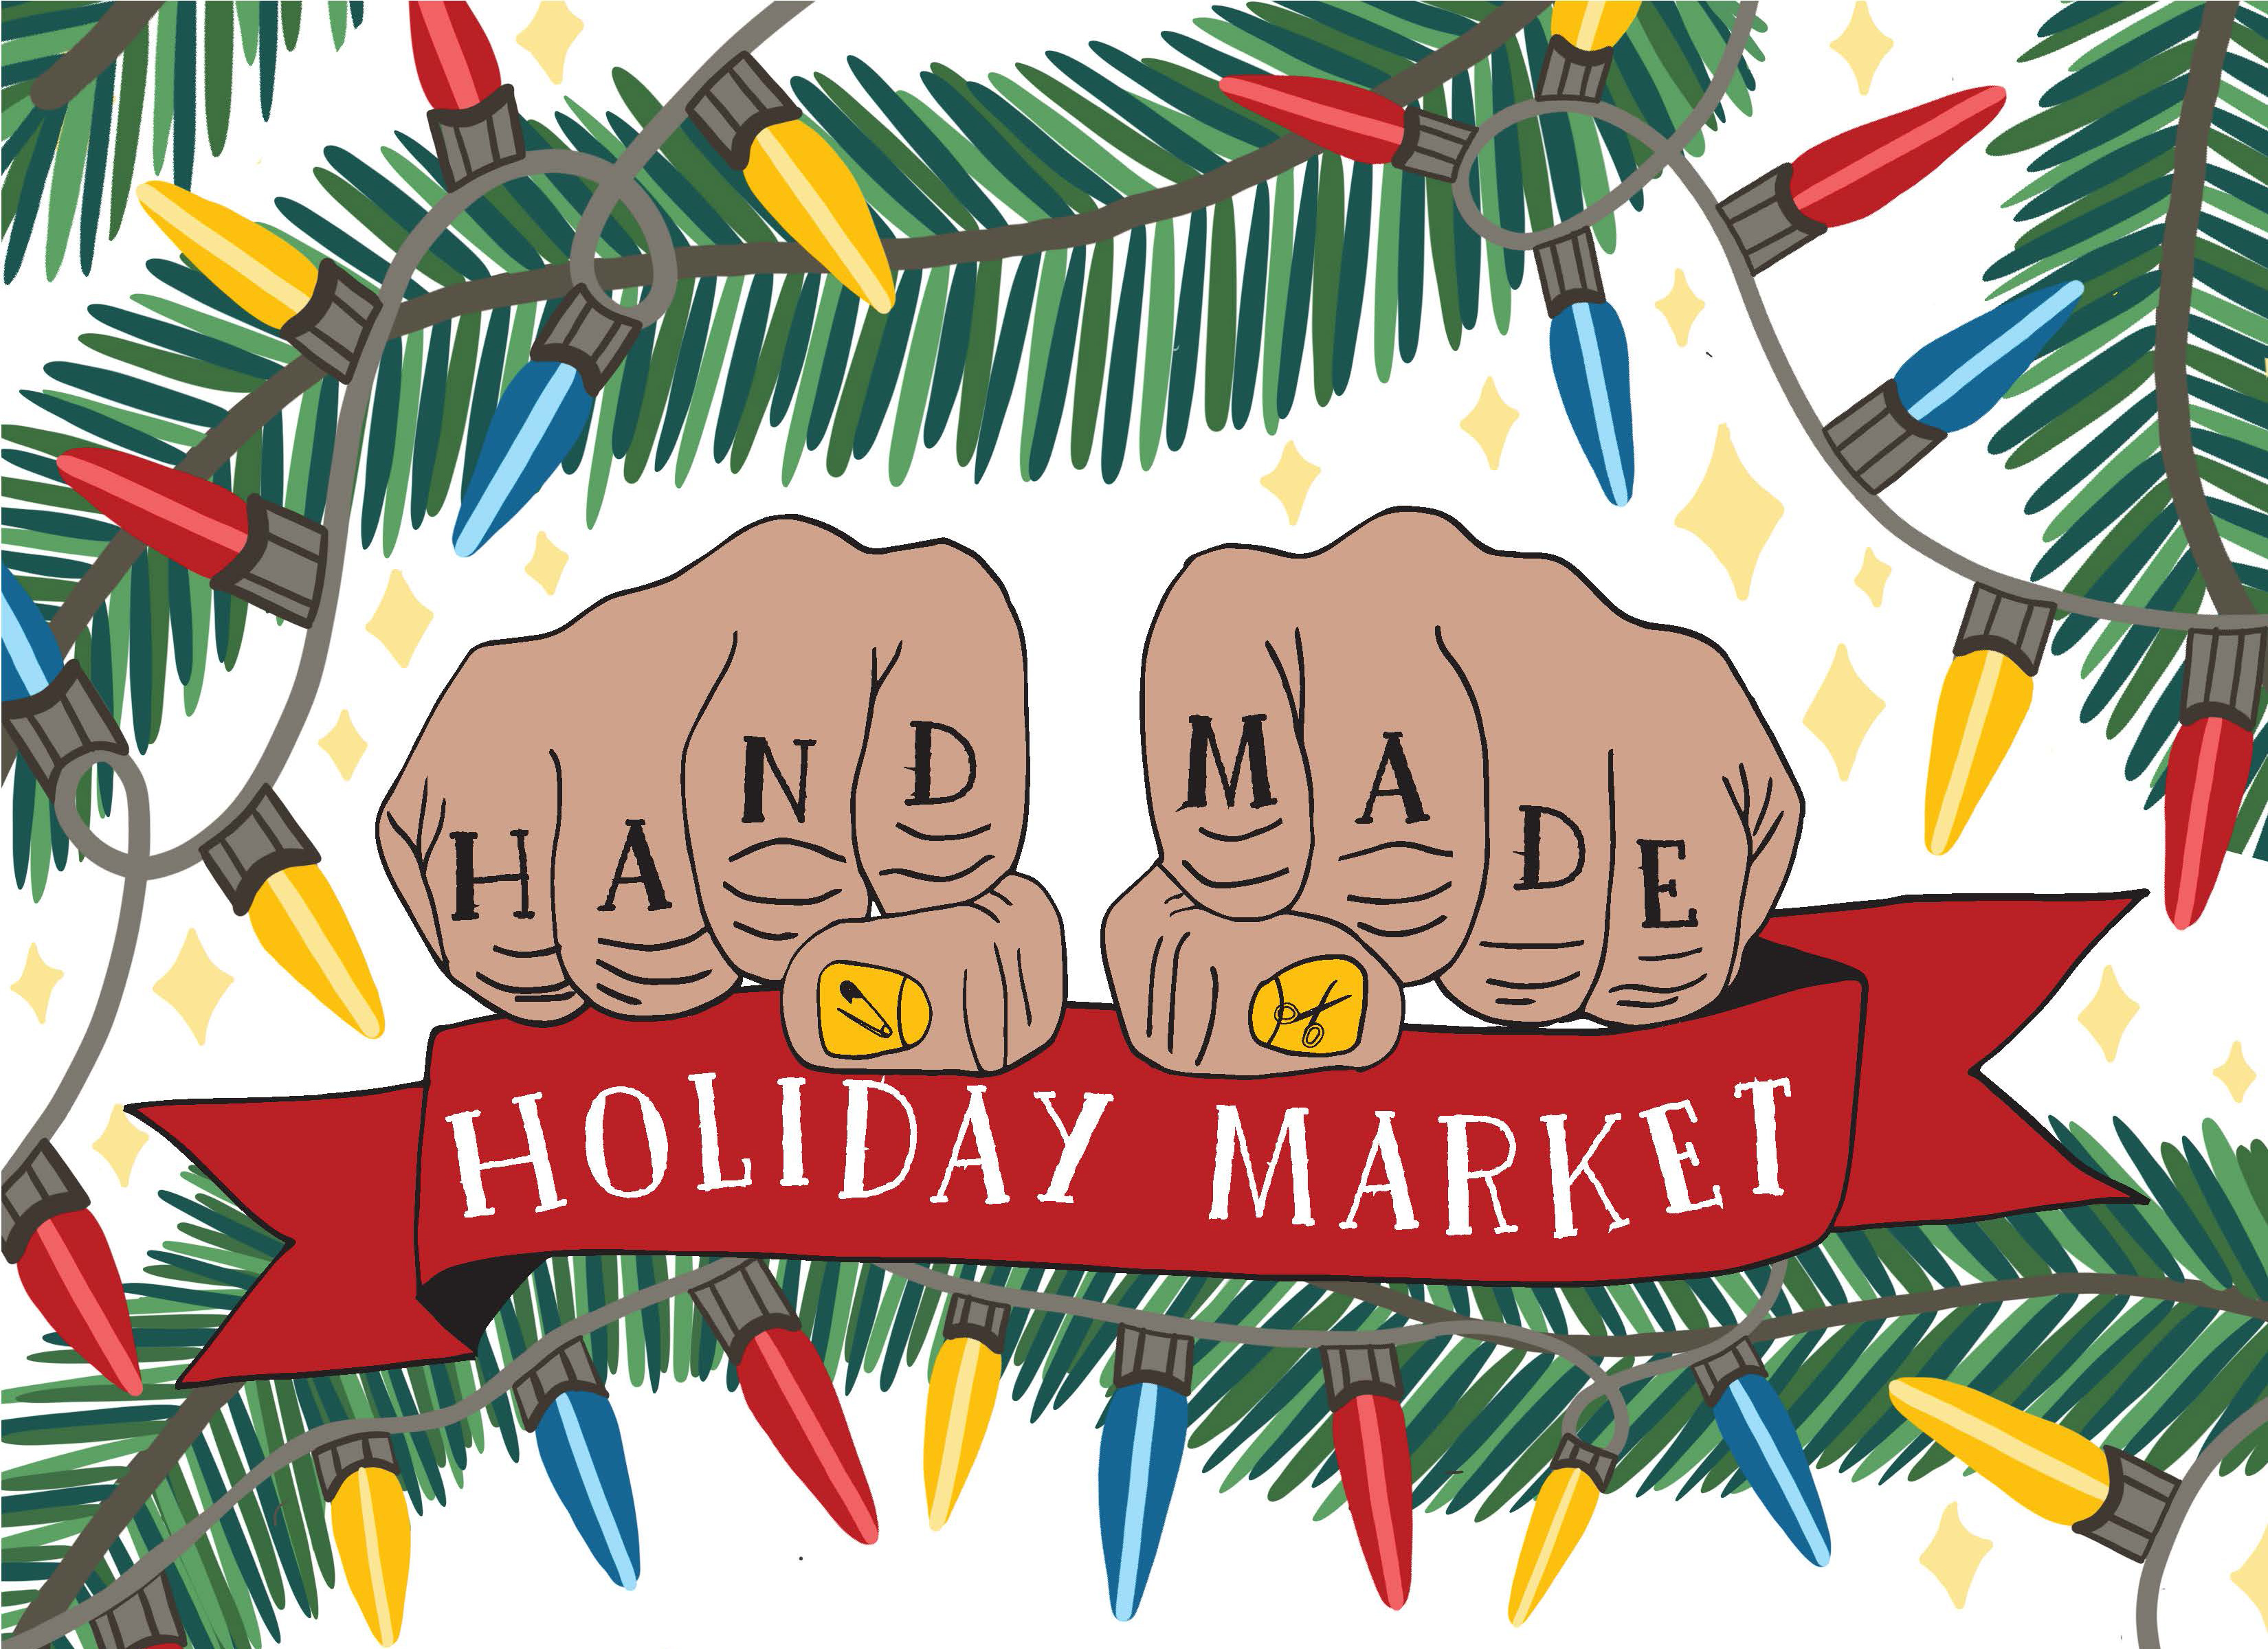 Second Use Seattle >> Save The Date Handmade Holiday Market At Second Use Seattle